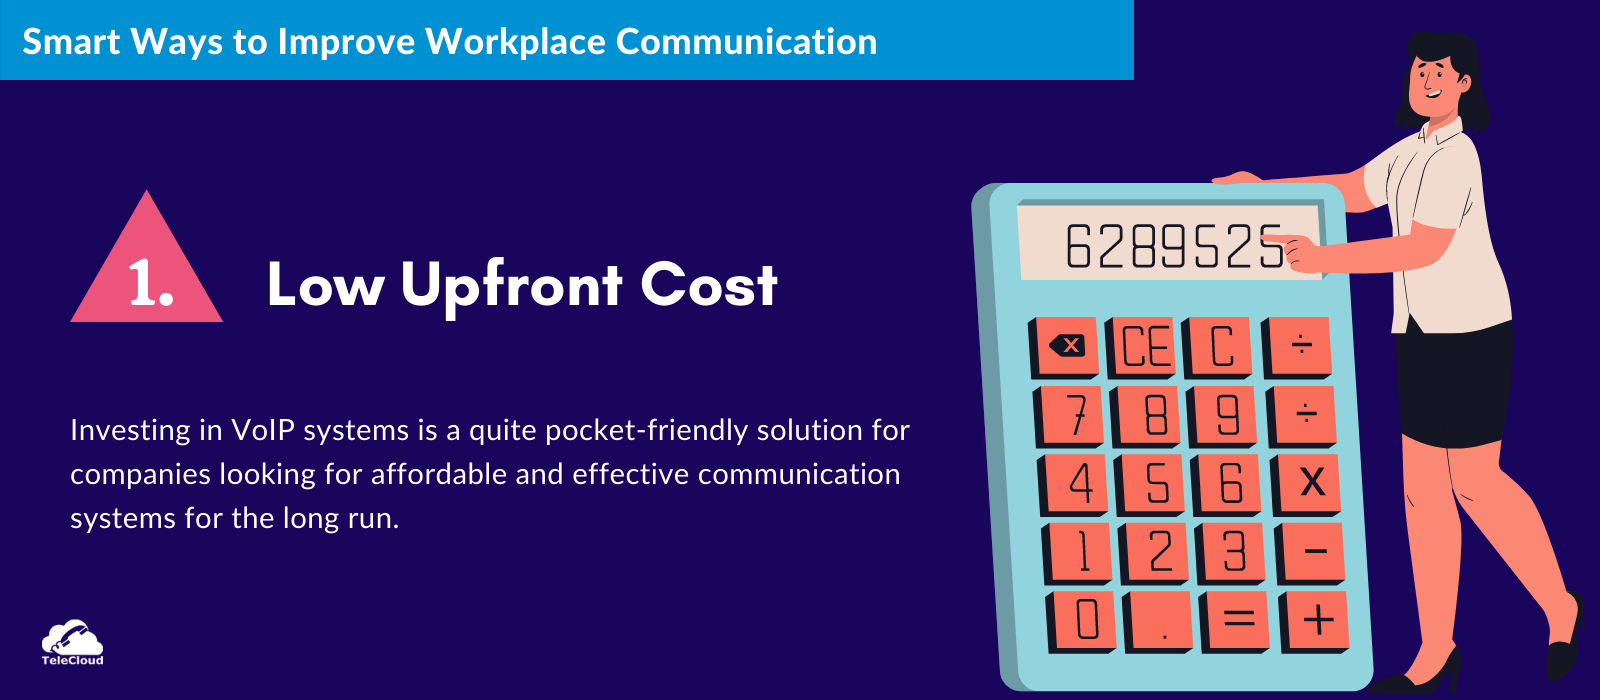 Low upfront cost to improve business communication - TeleCloud